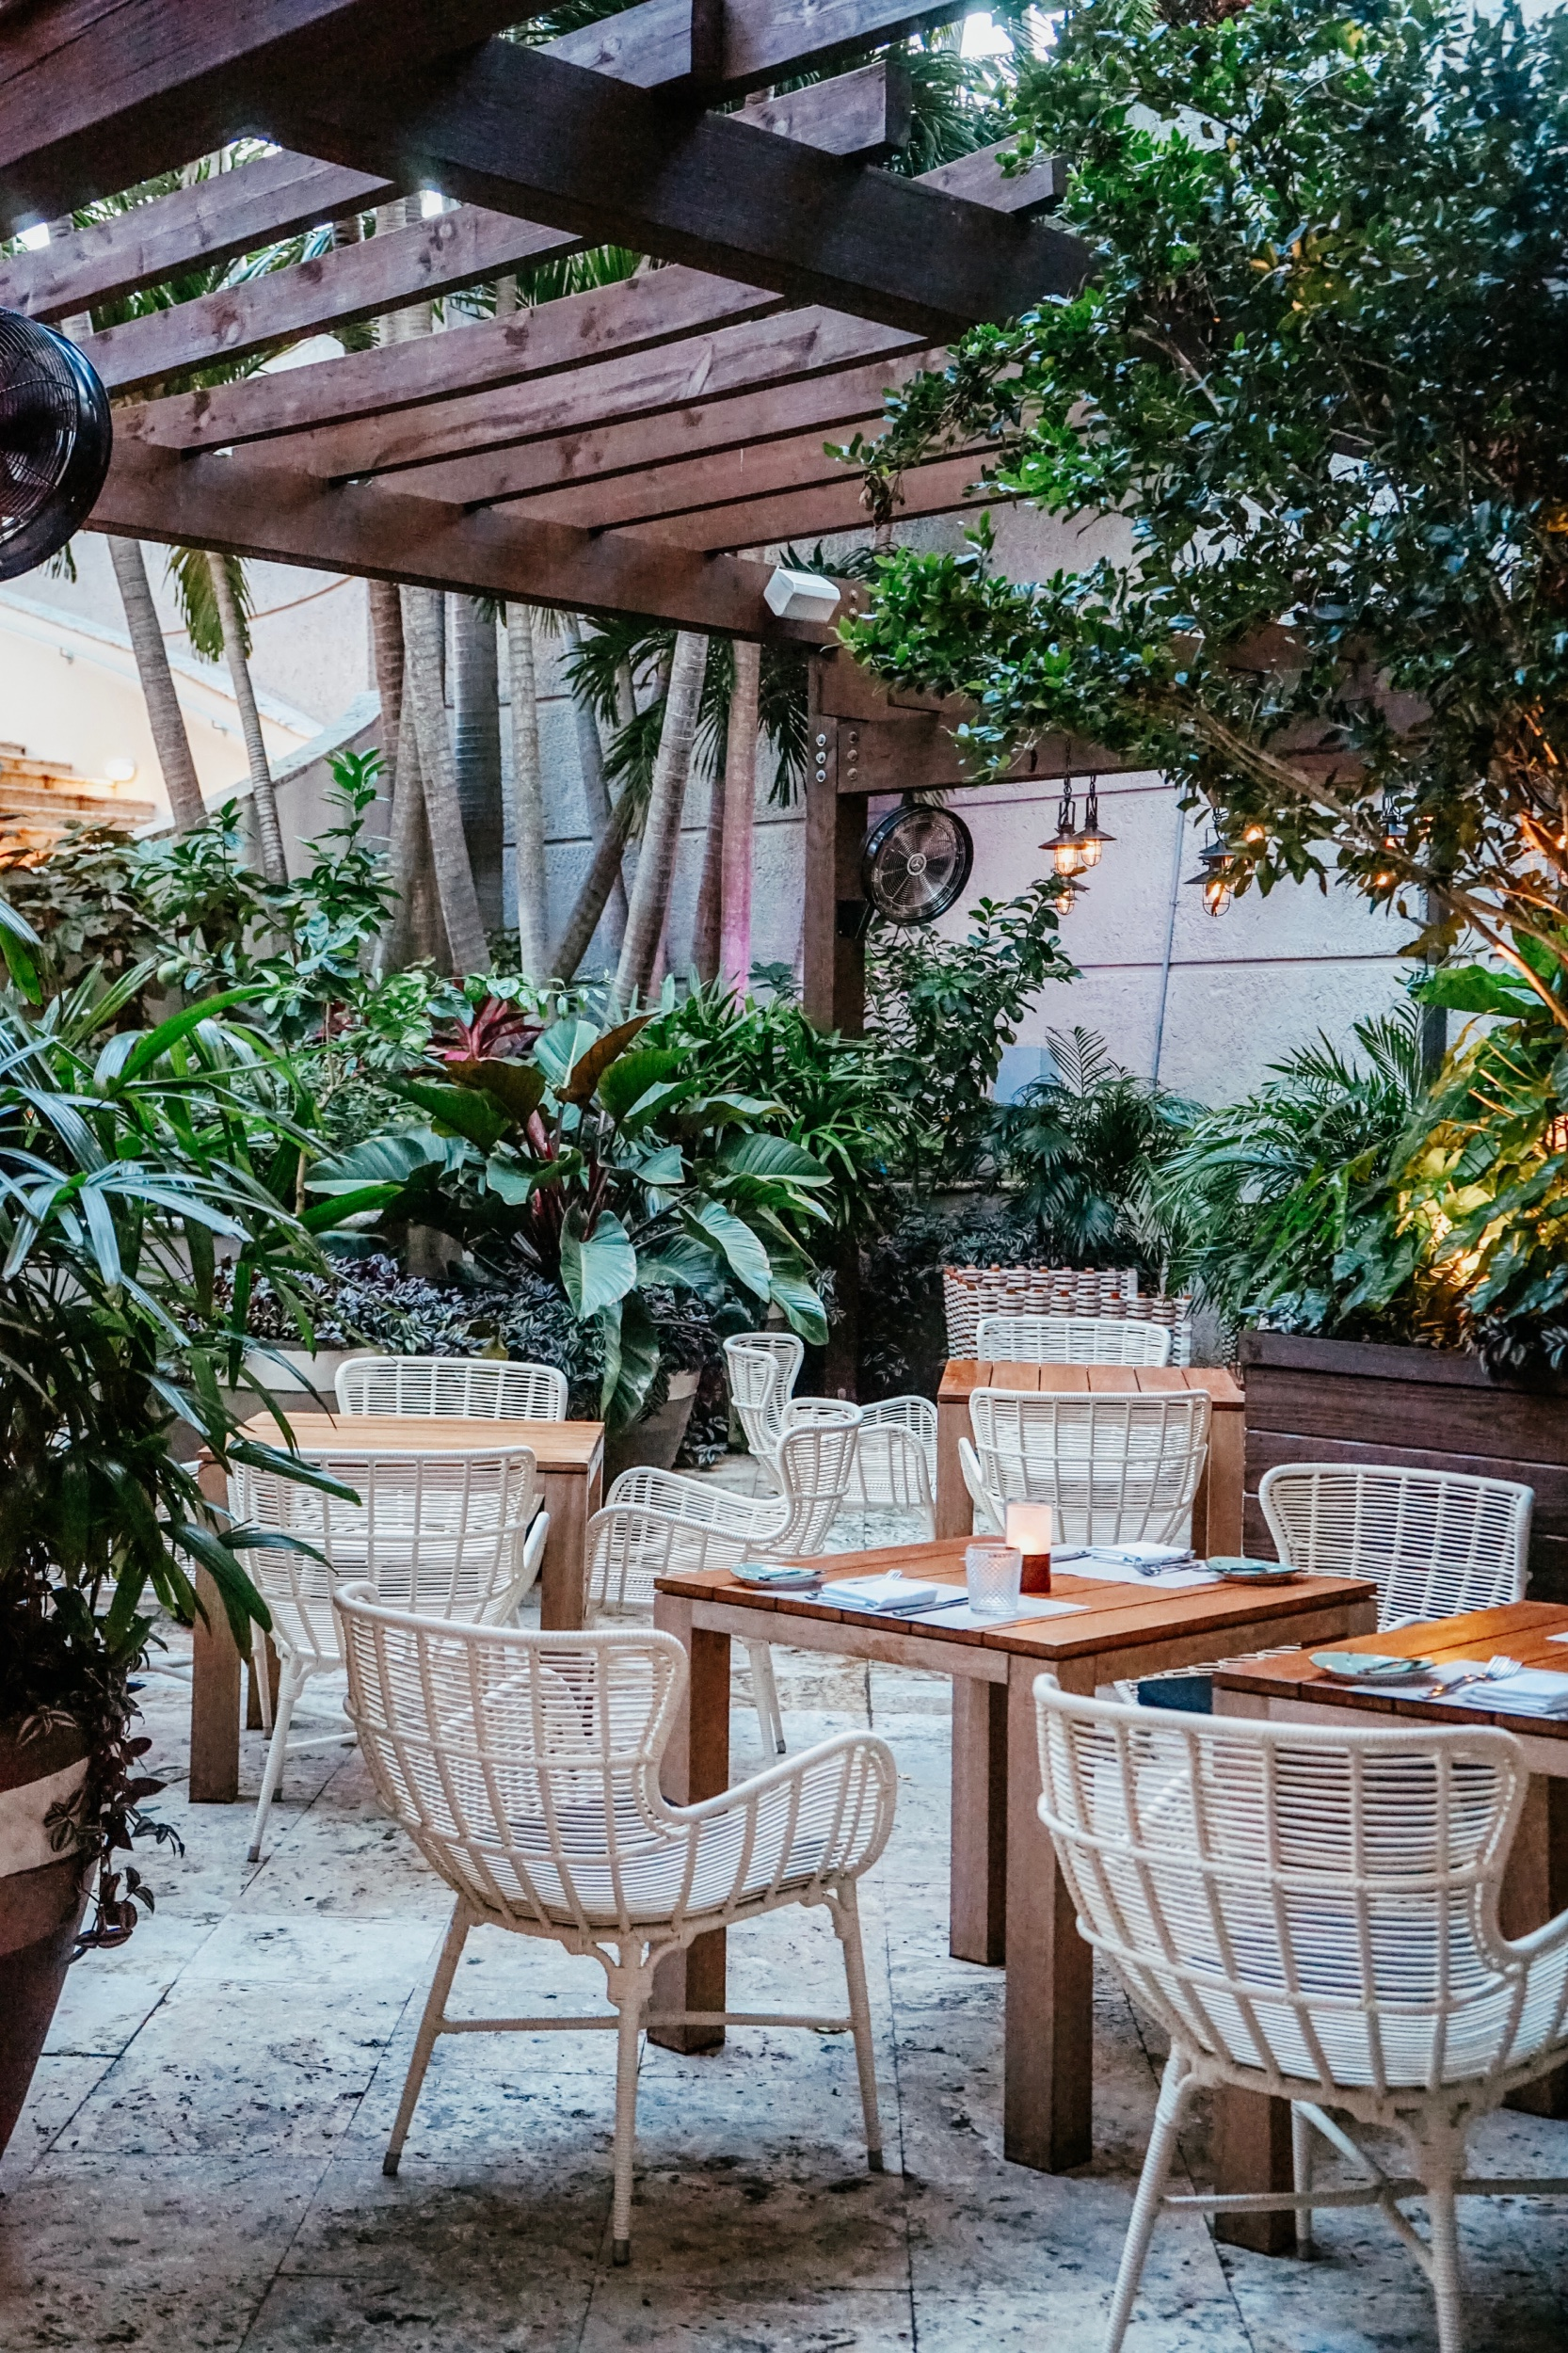 Isabelle's Grill Room + Garden, Coconut Grove